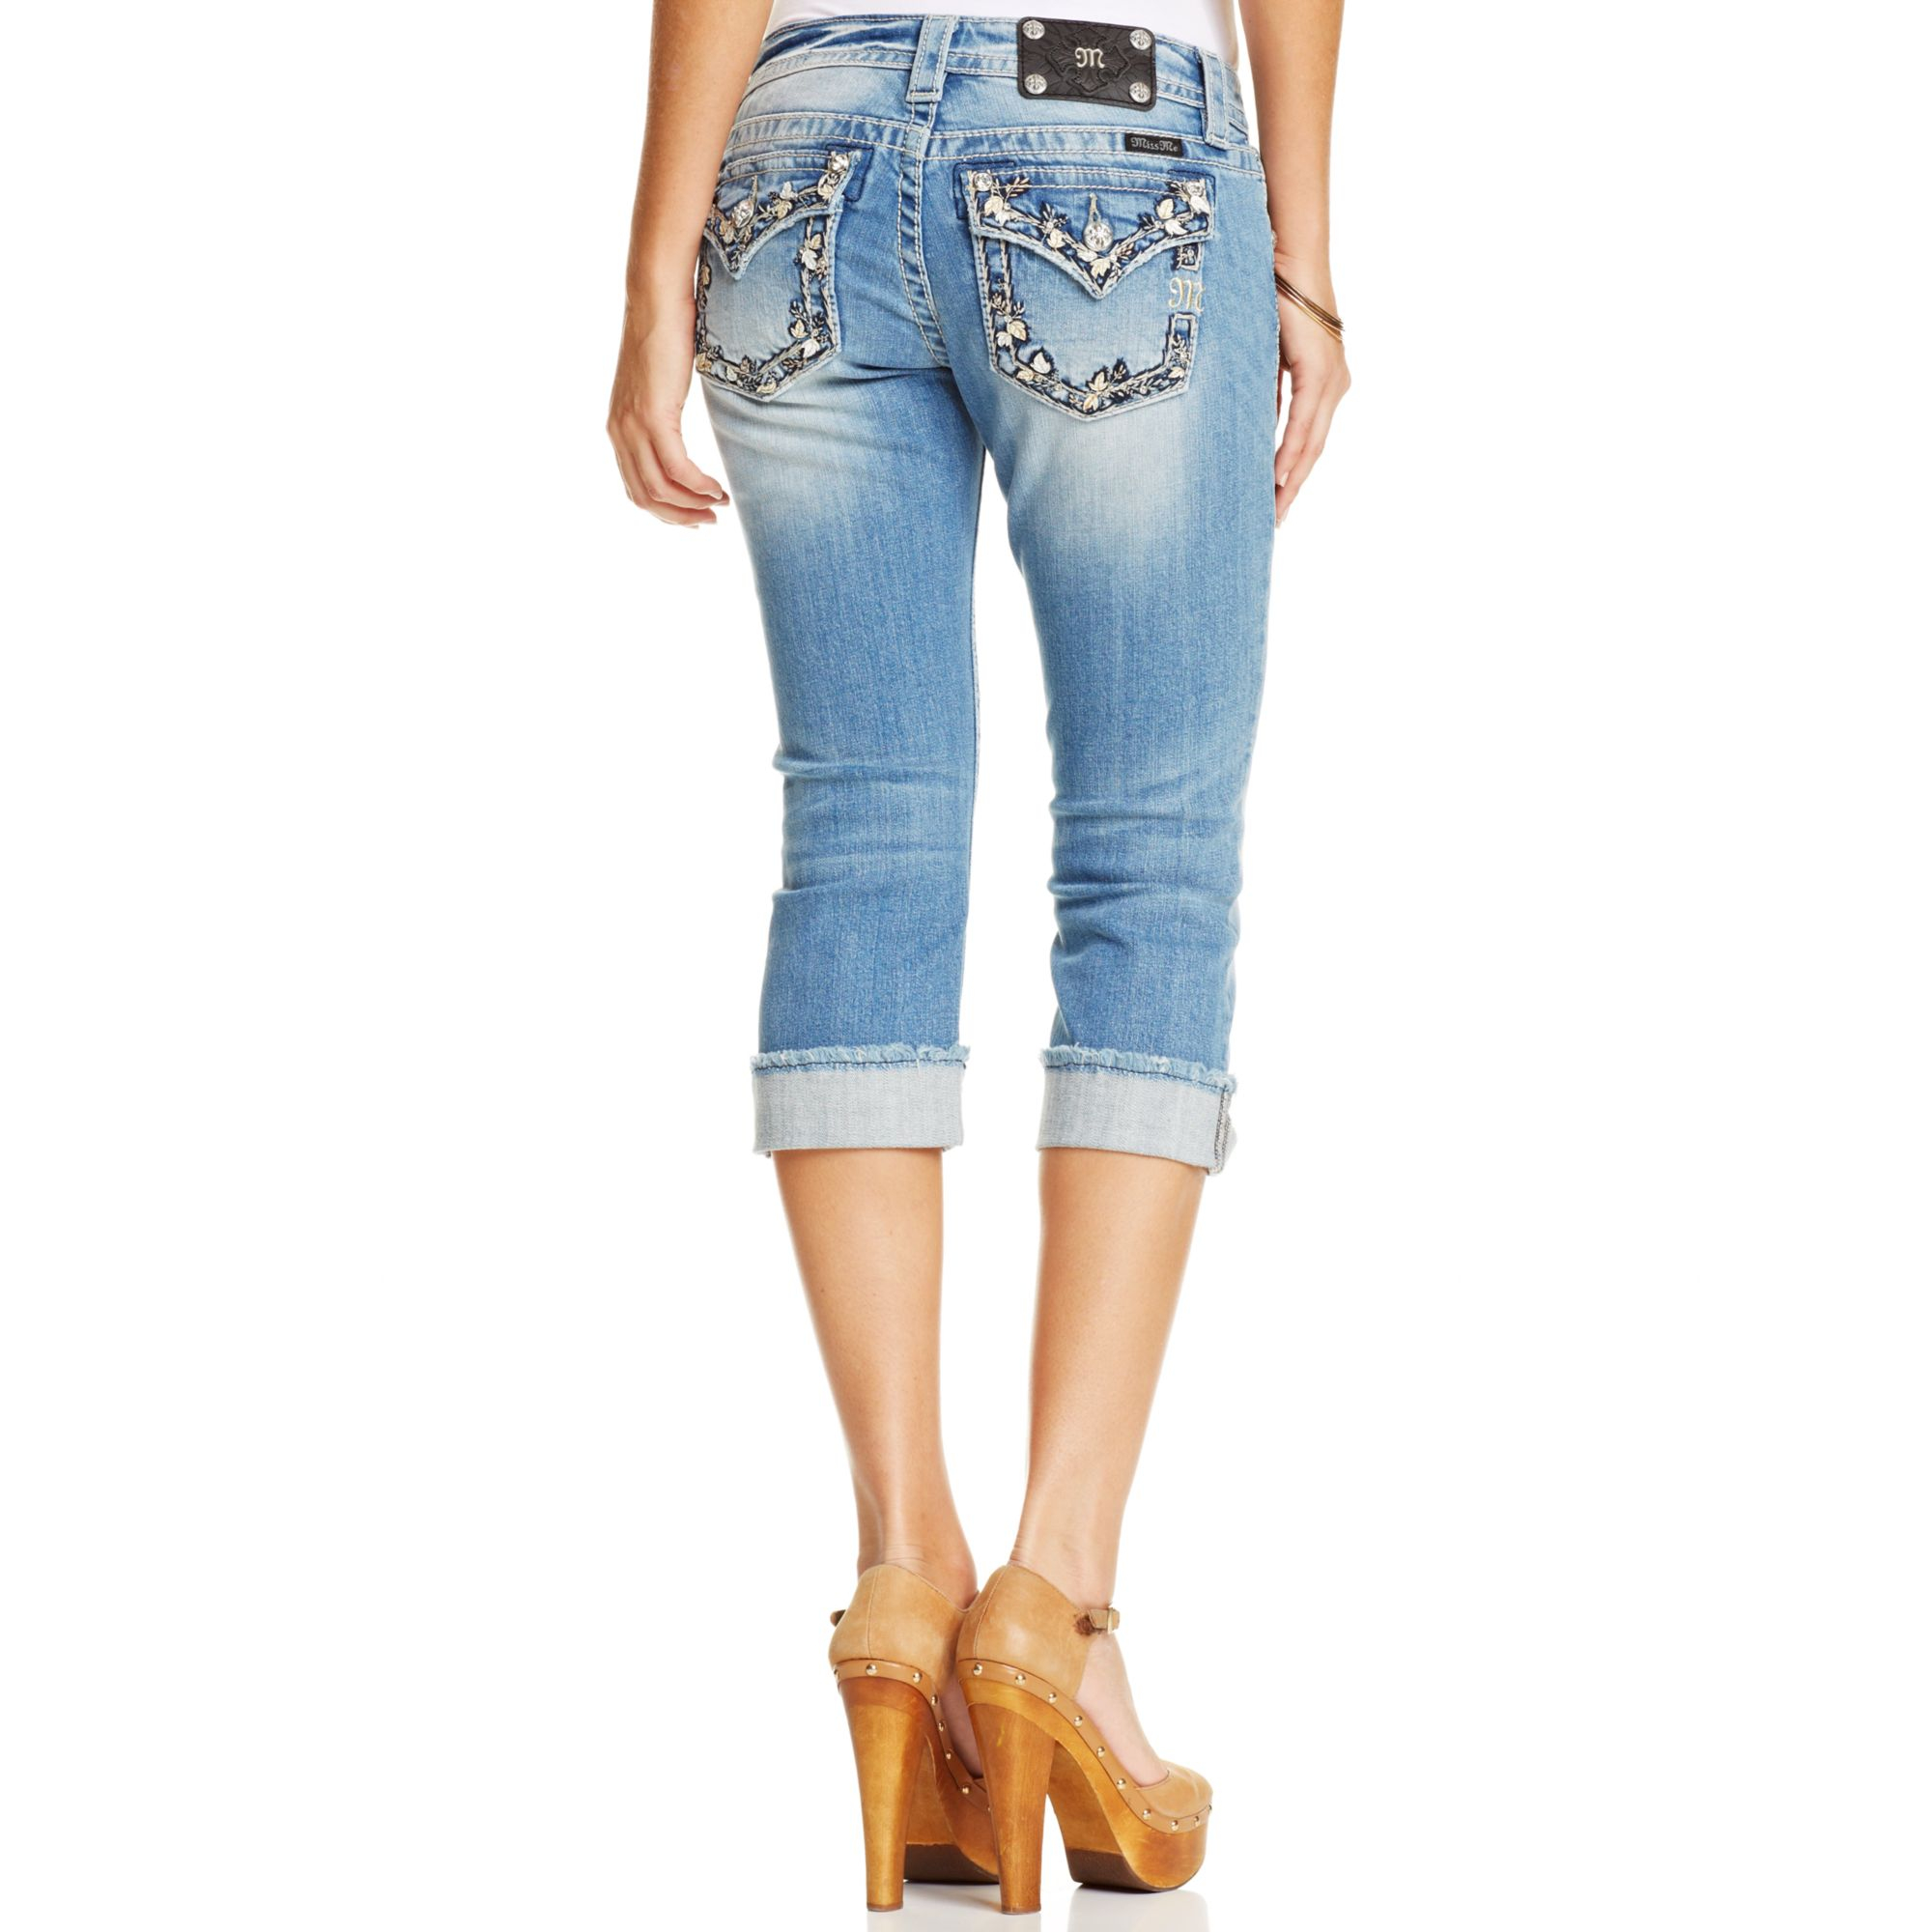 Miss Me Womens Mid Rise Cropped Cropped Jeans. Average rating: 0 out of 5 stars, based on 0 reviews Write a review. Reduced Price. This button opens a dialog that displays additional images for this product with the option to zoom in or out. Tell us if something is incorrect. Back. Miss Me.